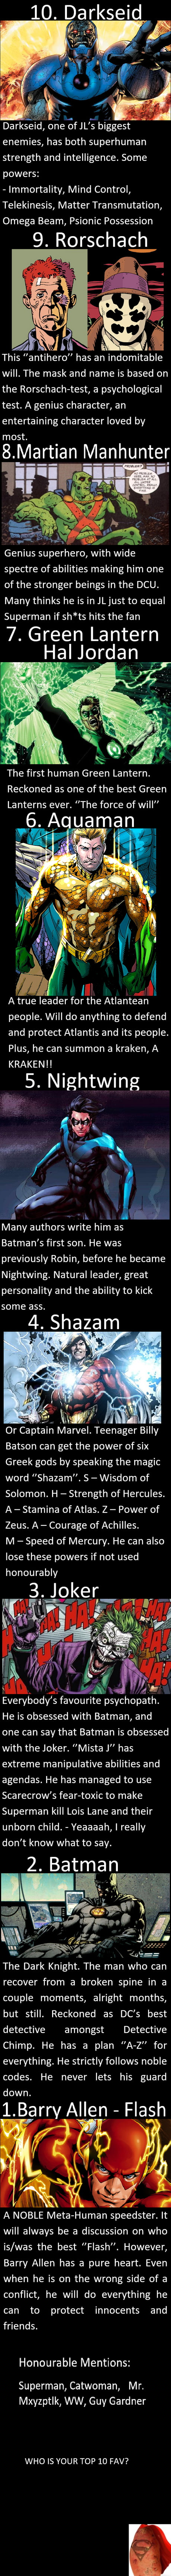 My Top 10 Fav DC Characters  What is your top 10? - 9GAG